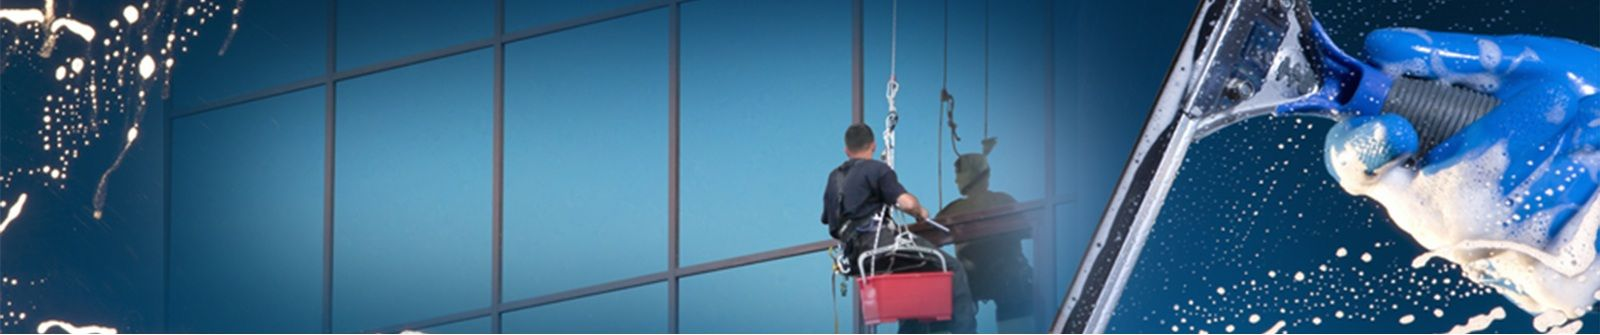 Window cleaning service